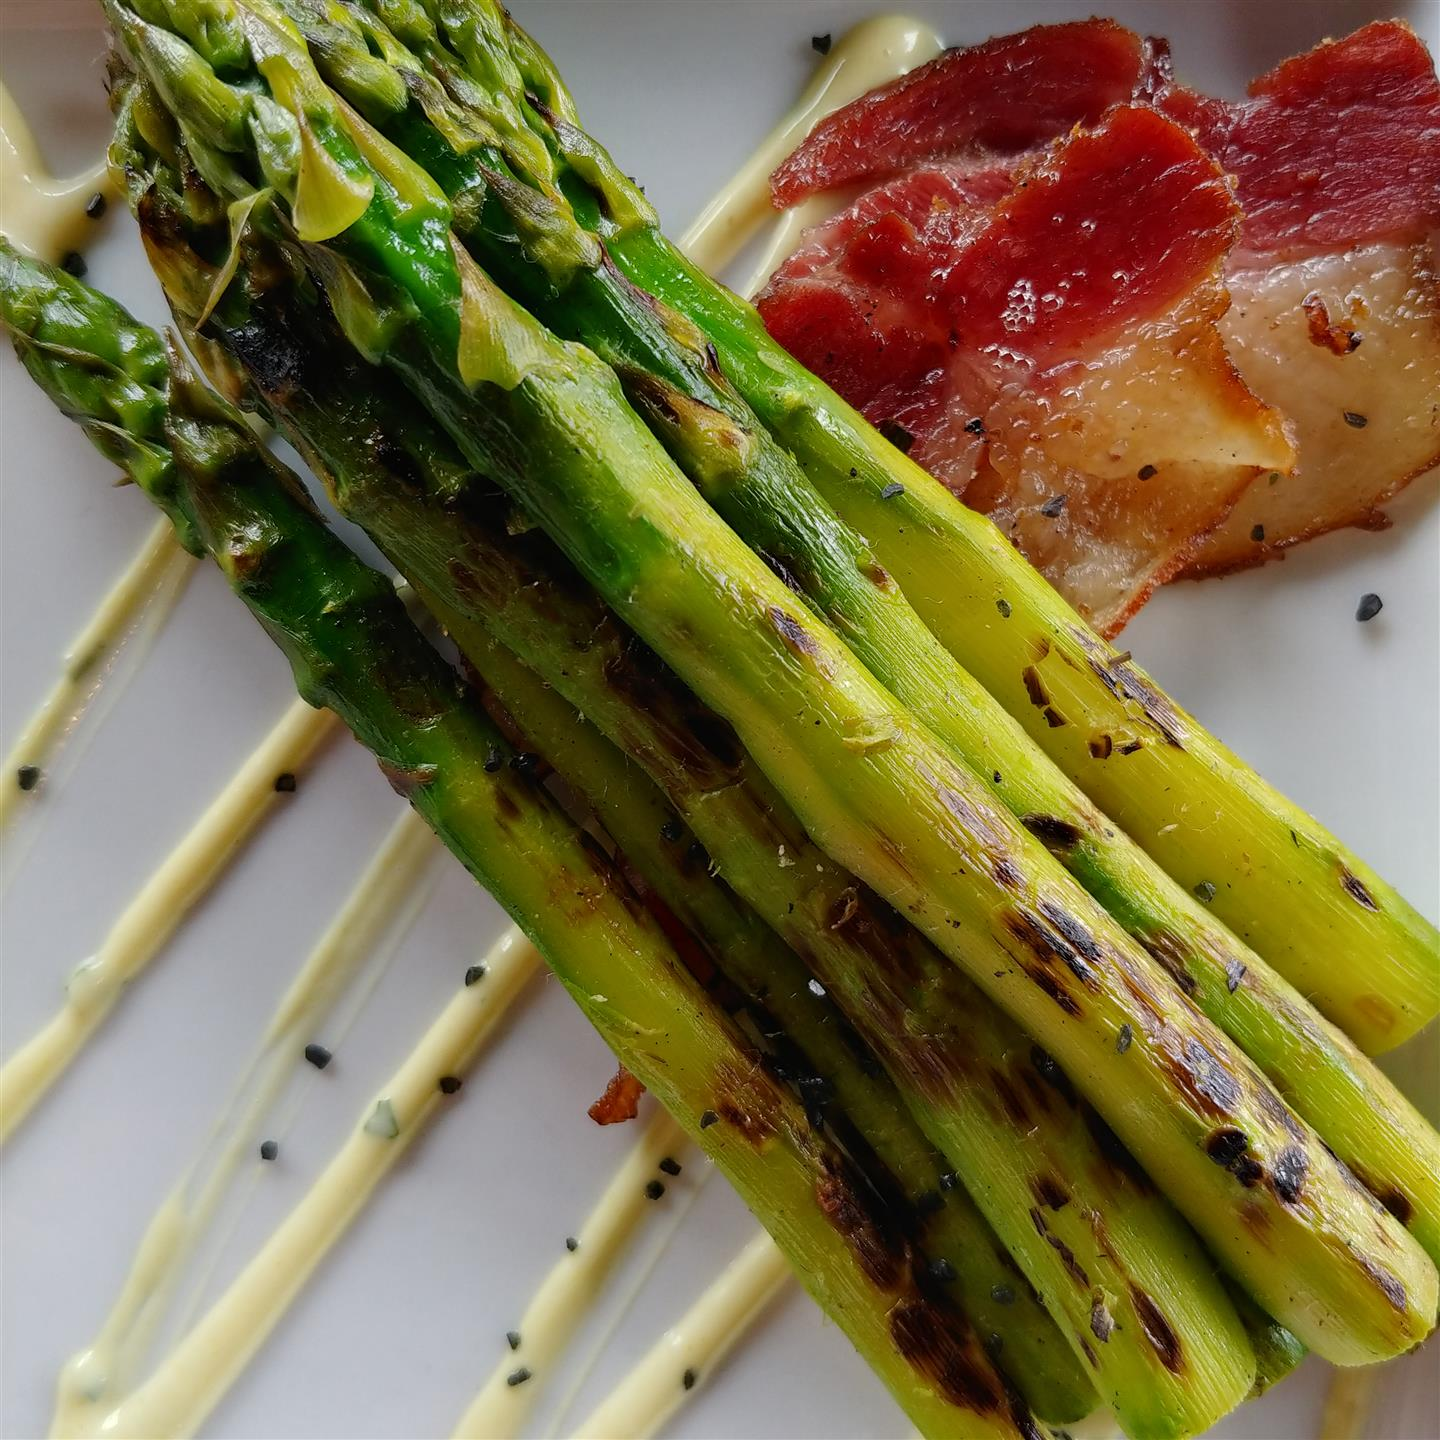 grilled asparagus drizzled in a cream sauce